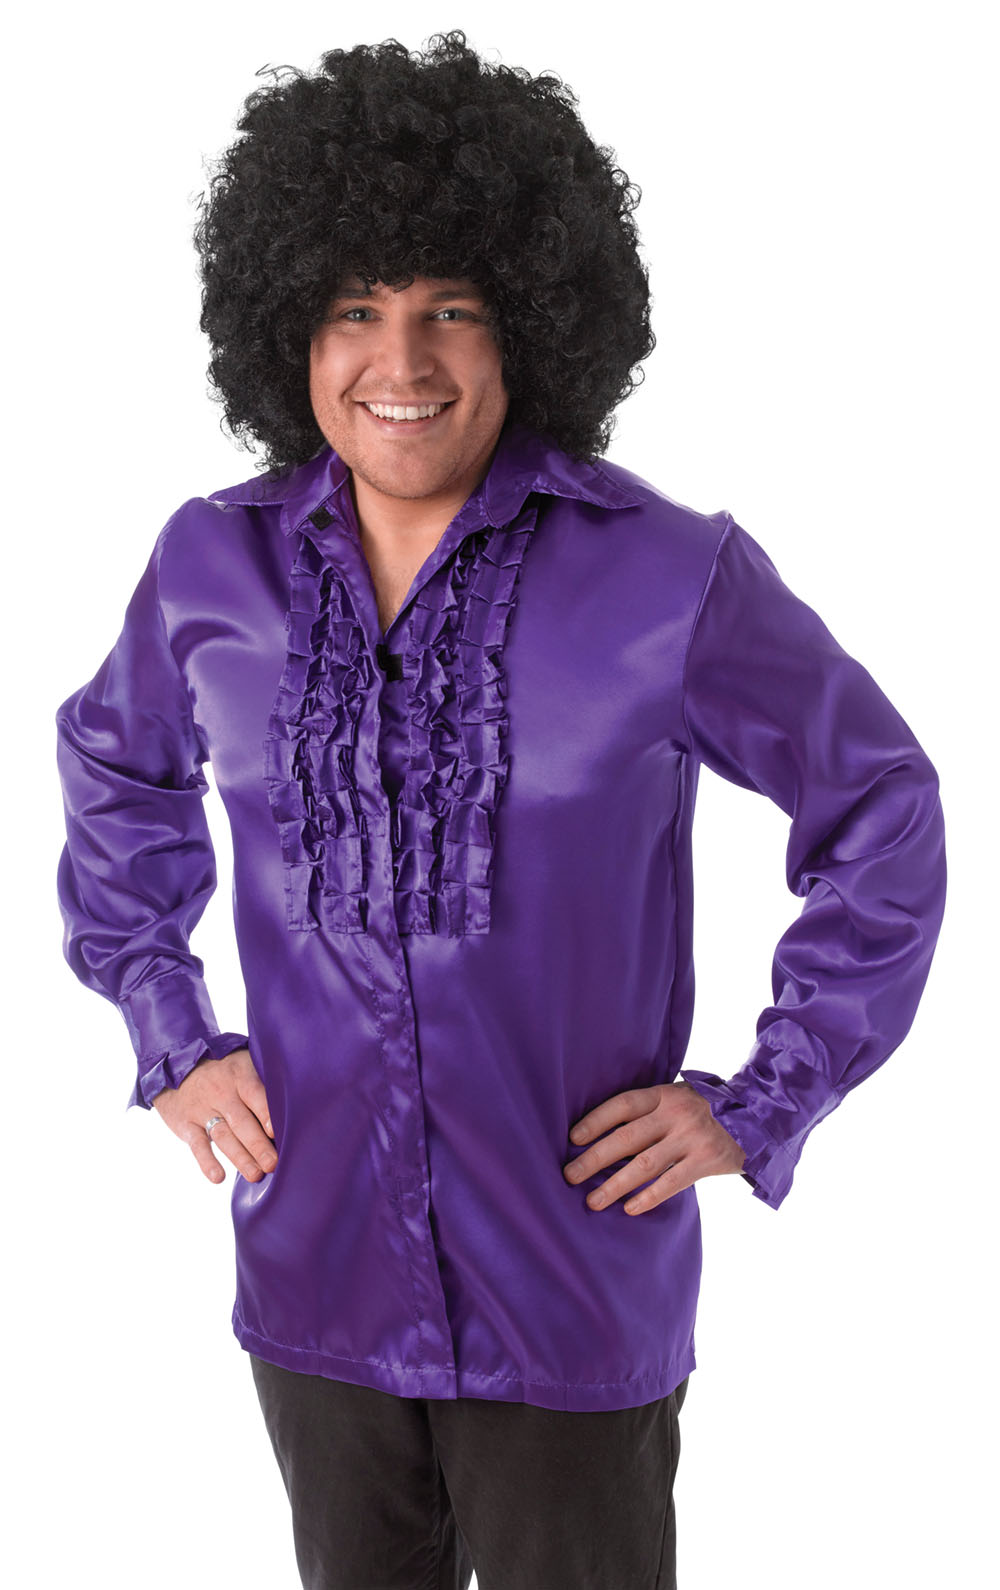 Mens Satin Purple Ruffled Shirt Comedy Fancy Dress Costume Dancing Outfit New